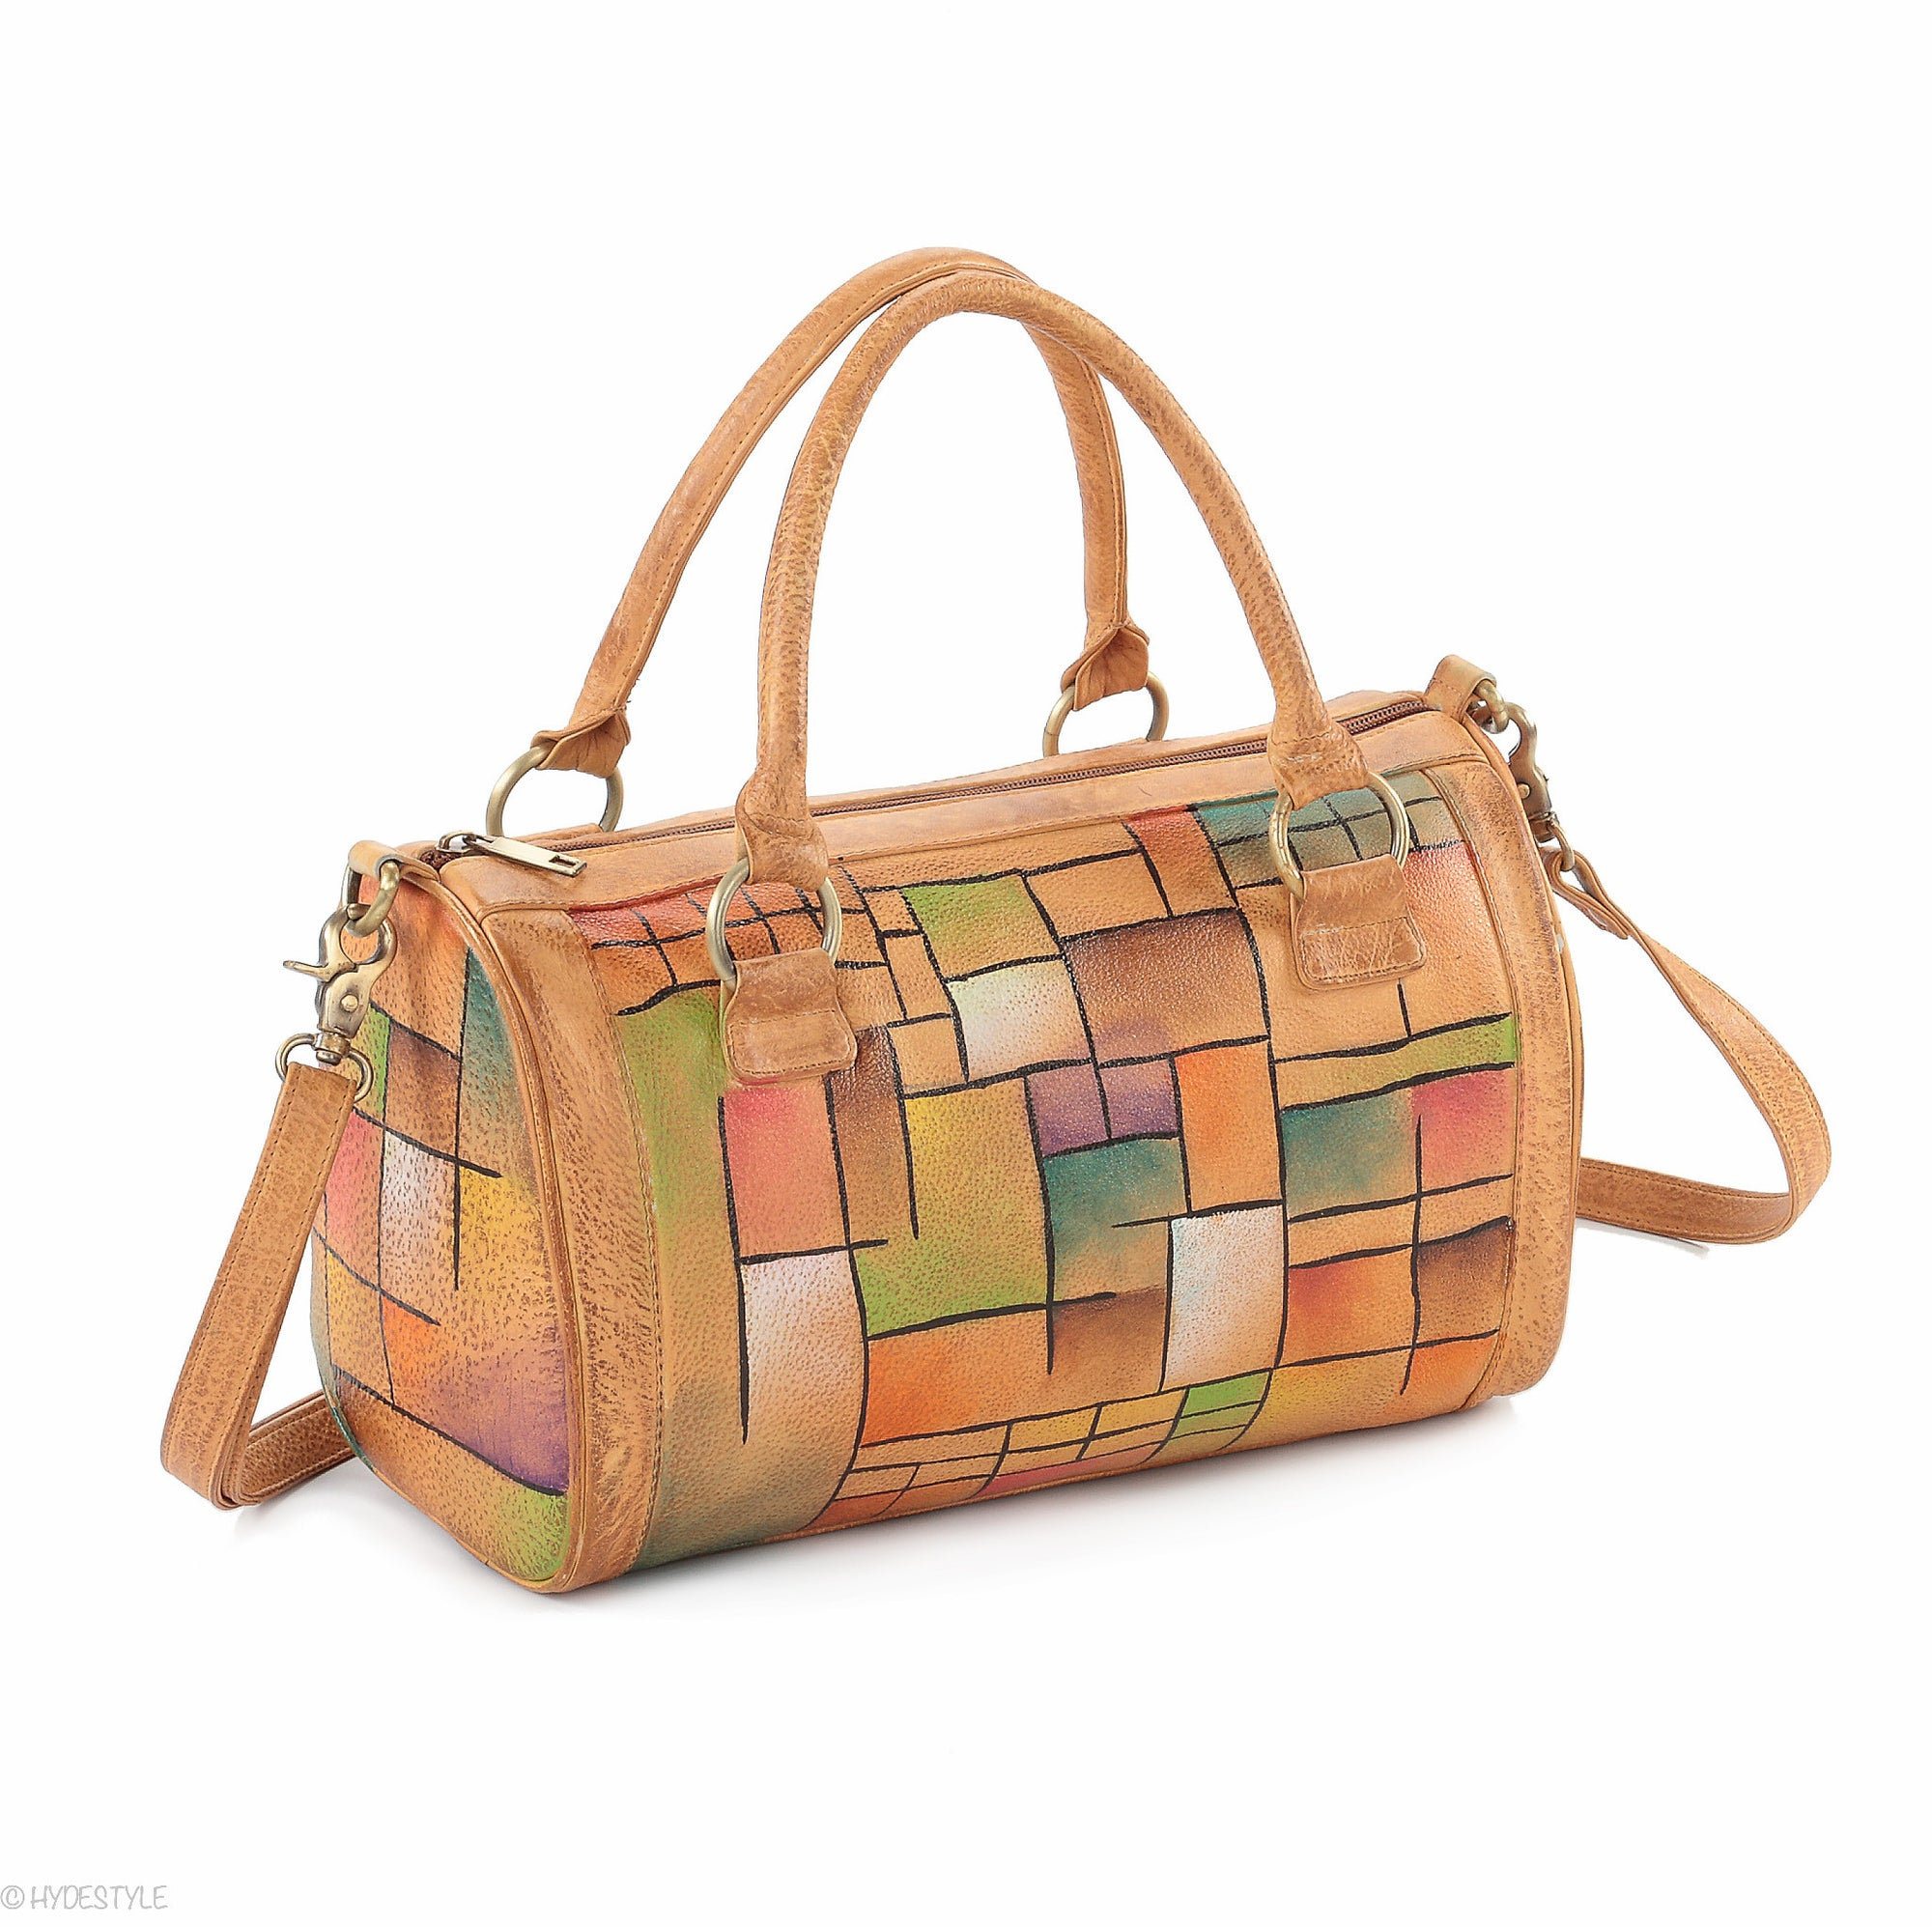 Picta Manu hand painted leather bowling bag #LB18 Squares